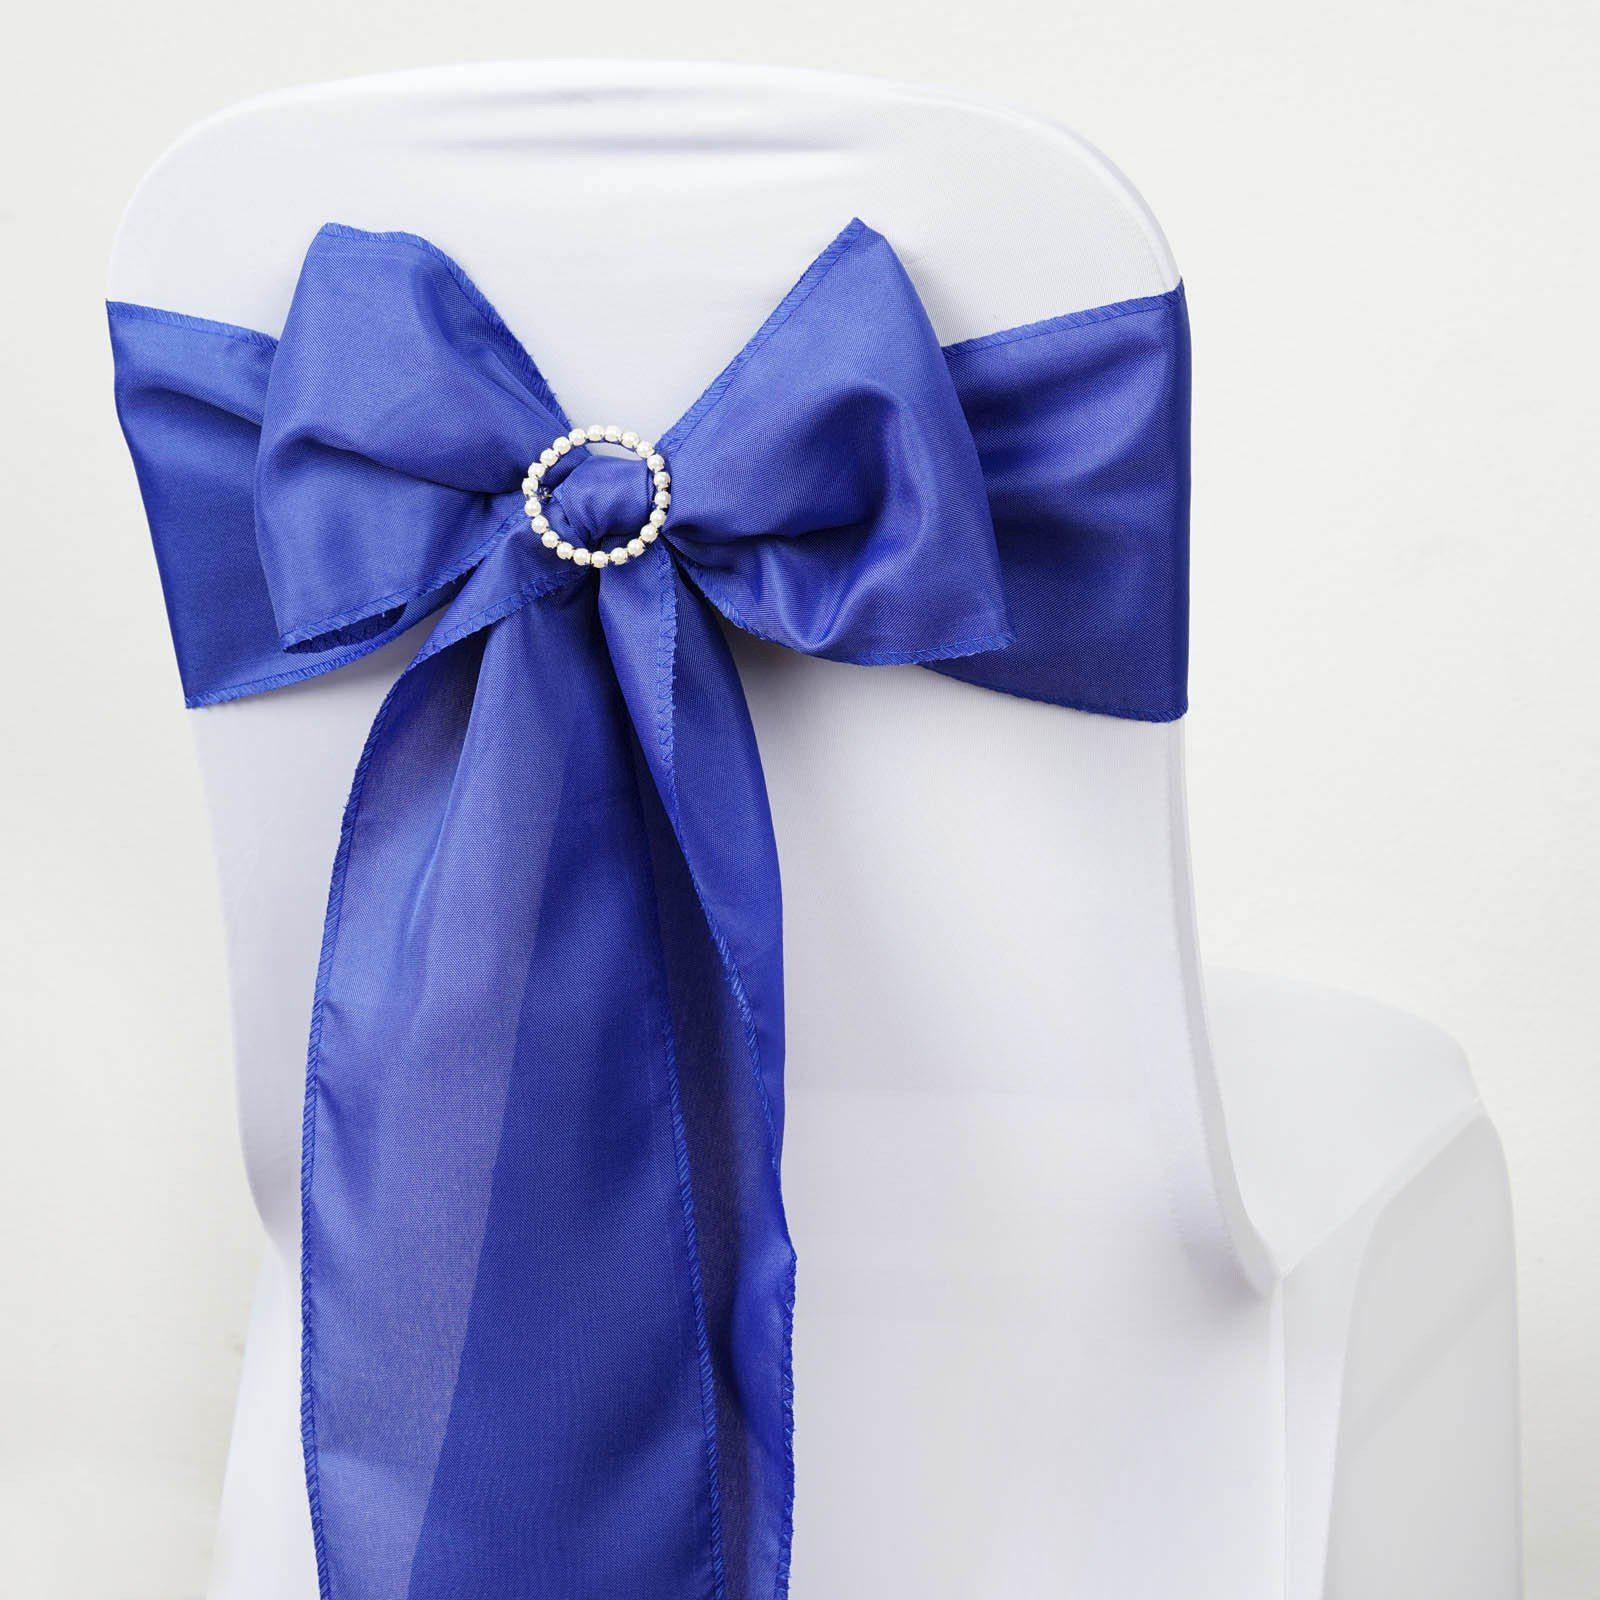 5 PCS ROYAL BLUE Polyester Chair Sashes Tie Bows Catering Wedding Party Decorations - 6x108  & 5 PCS ROYAL BLUE Polyester Chair Sashes Tie Bows Catering Wedding ...